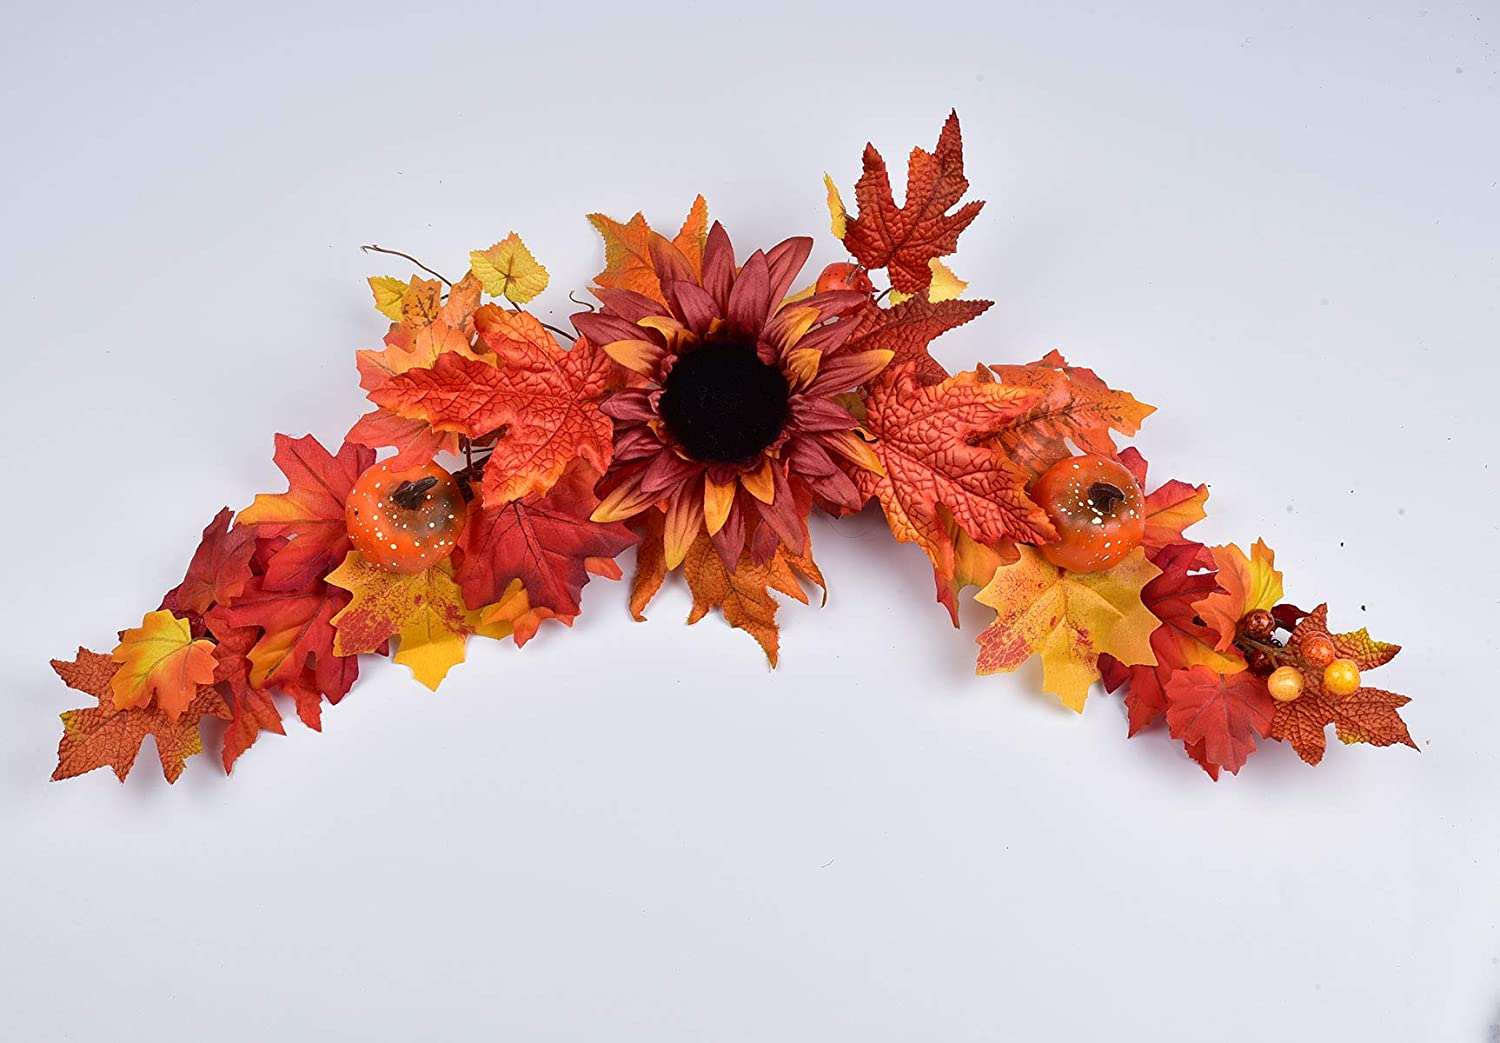 LSKYTOP Artificial Sunflower Swag - 25